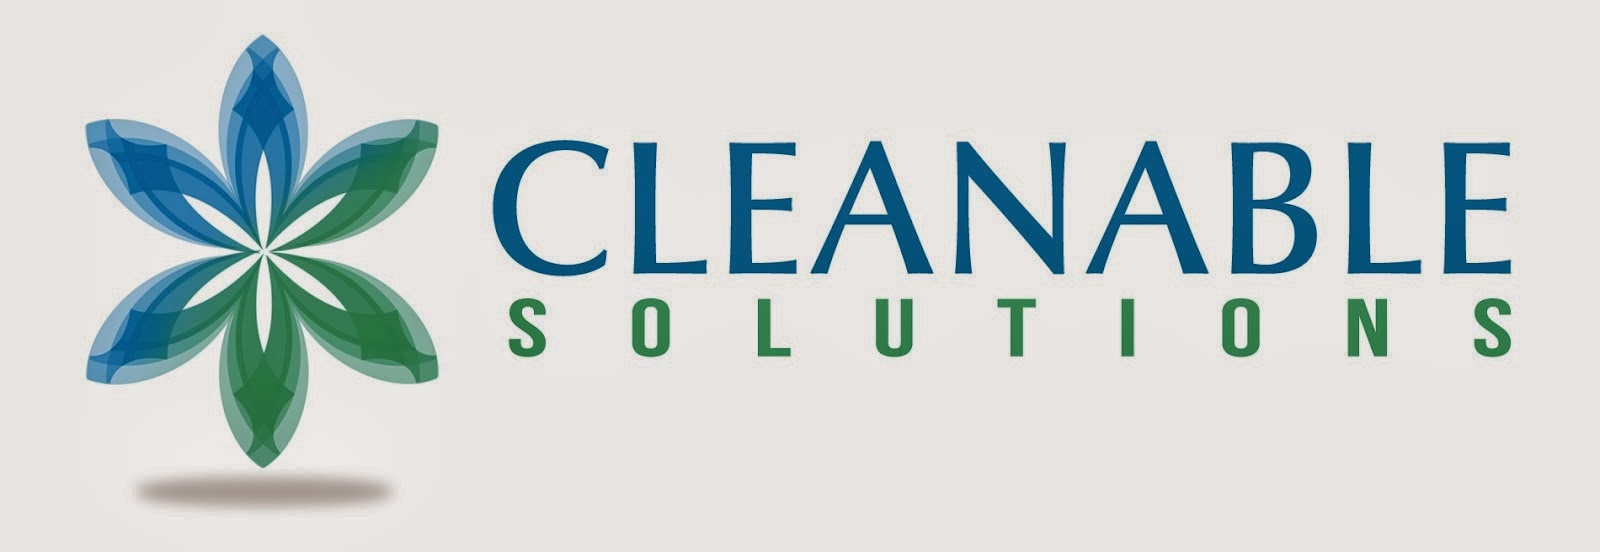 cleanable solutions duct cleaners